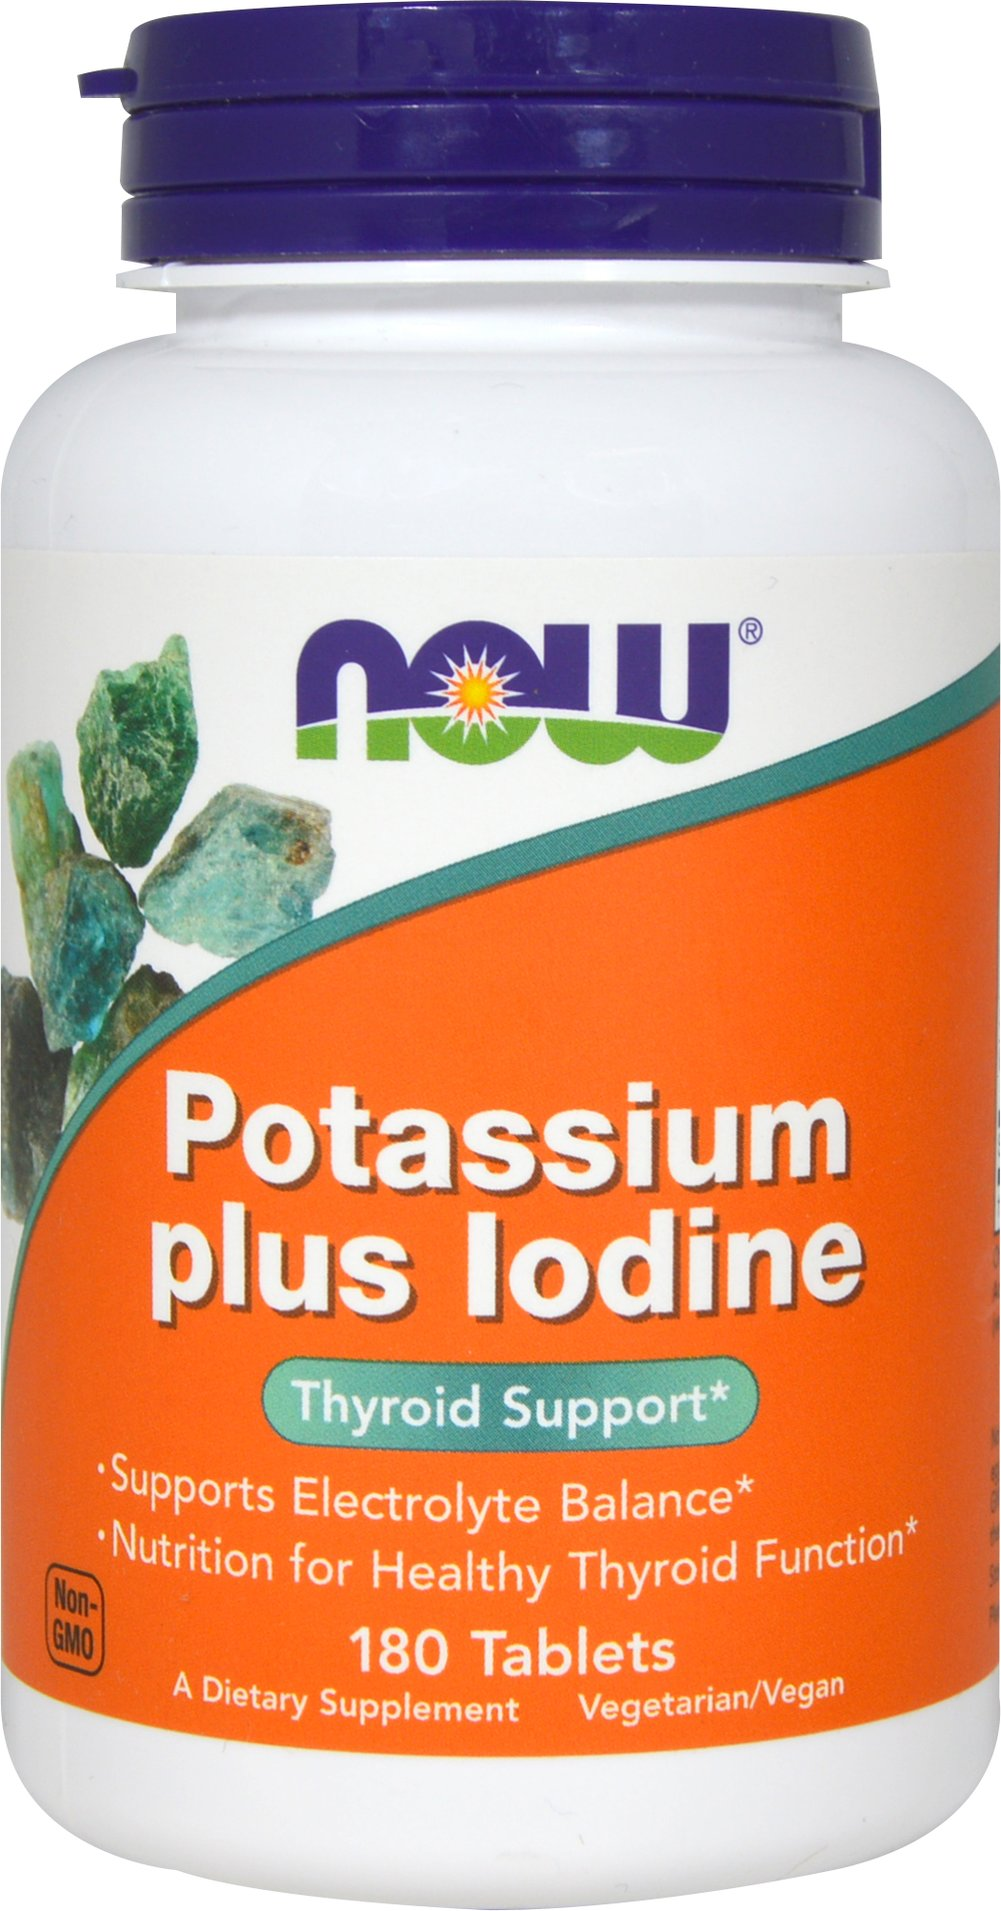 Potassium plus Iodine  180 Tablets  $6.49